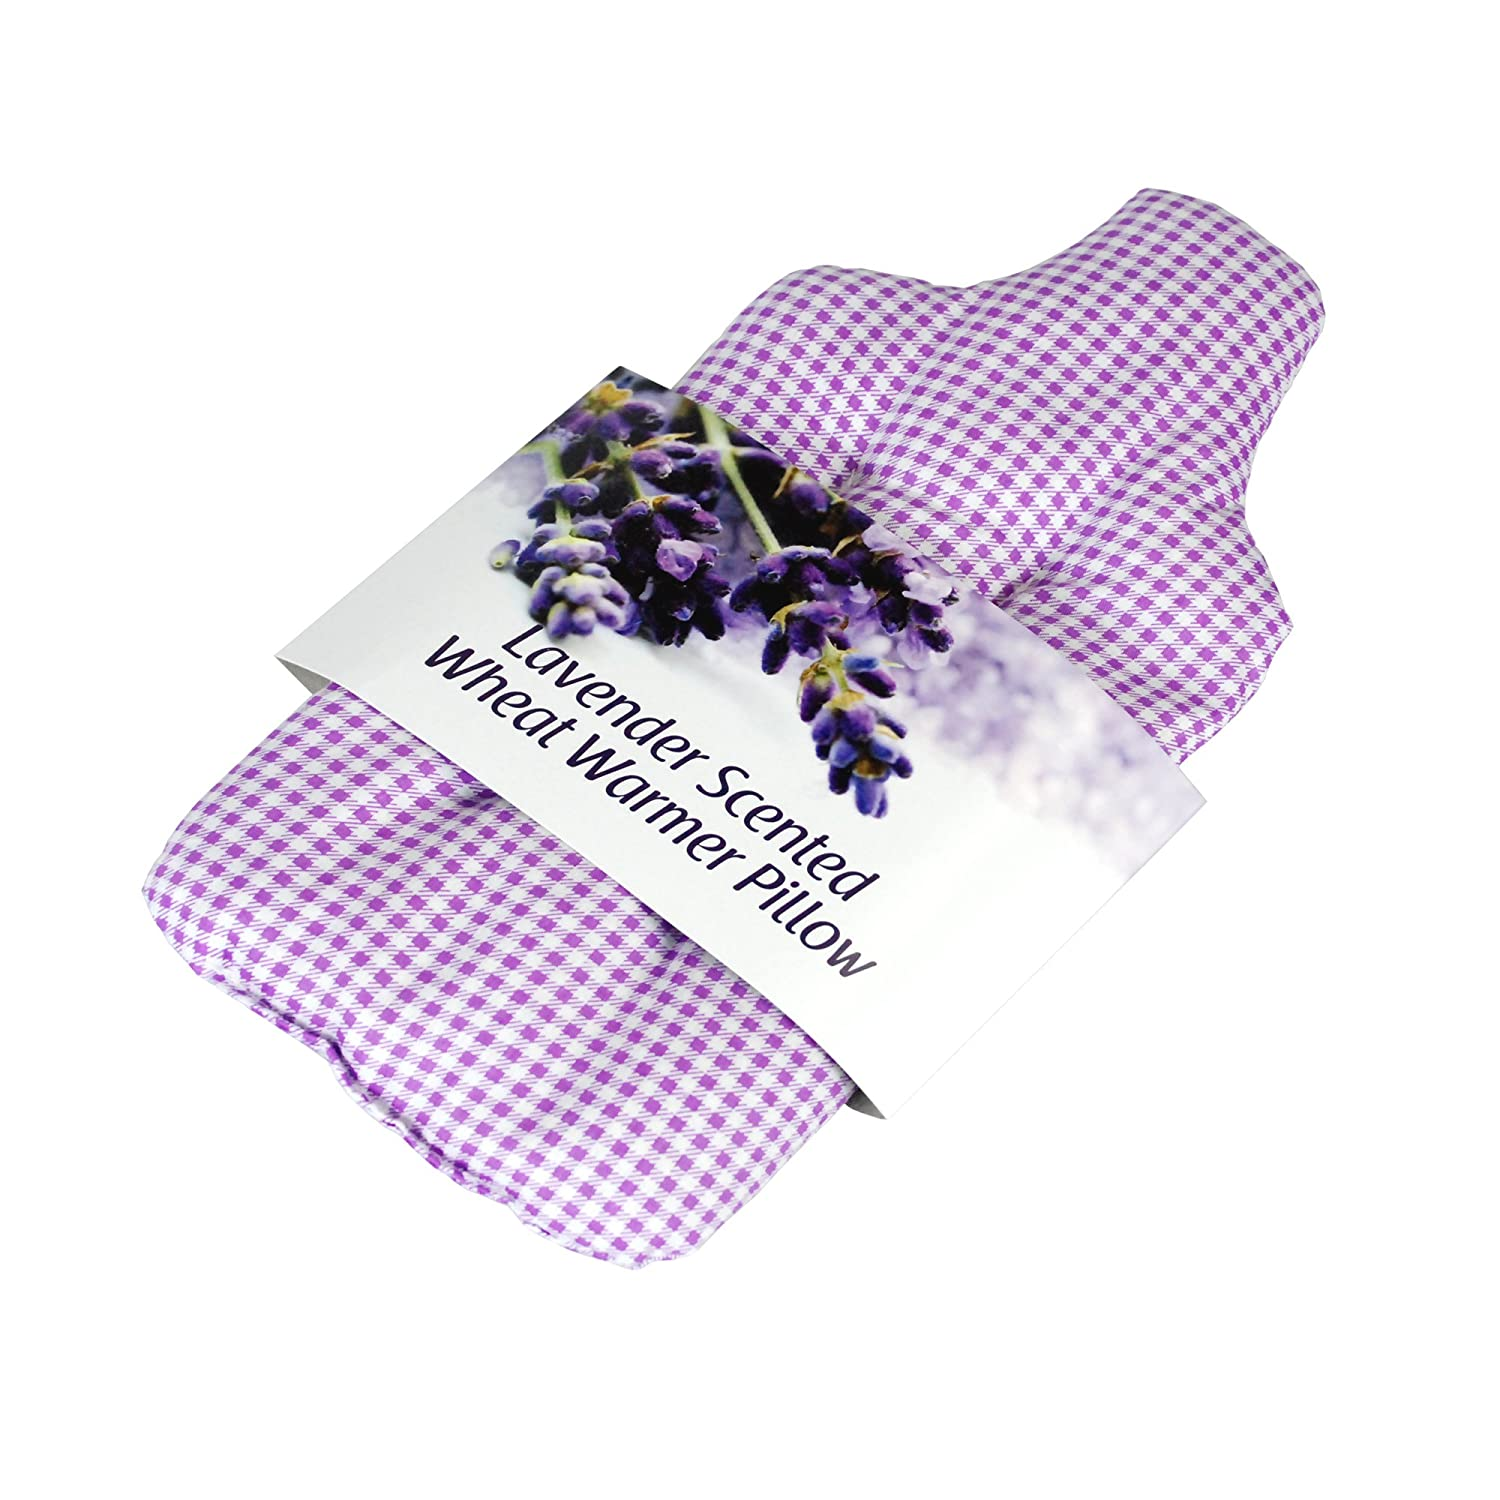 from scented pillow stewart martha lavender pillows our partners xl